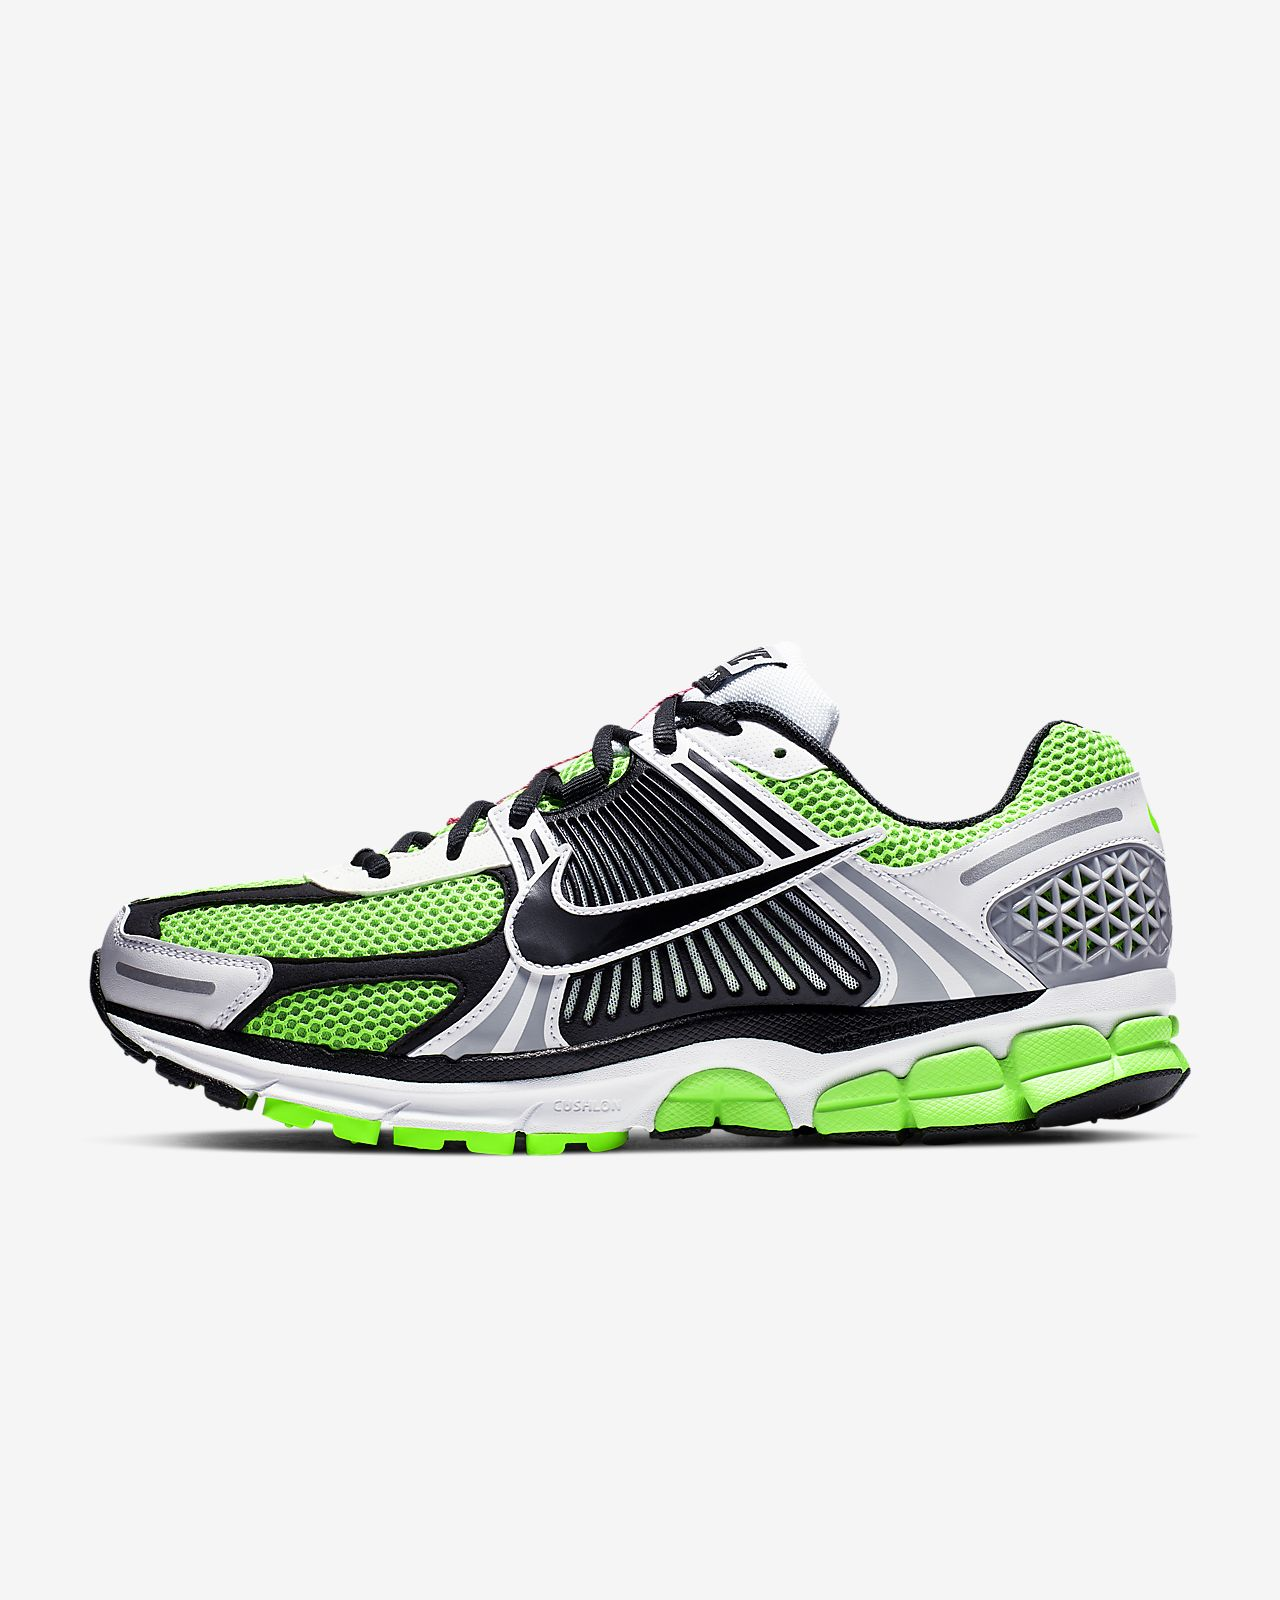 Pour Homme Nike Vomero Chaussure 5 Se Sp Zoom E9WYHbeD2I